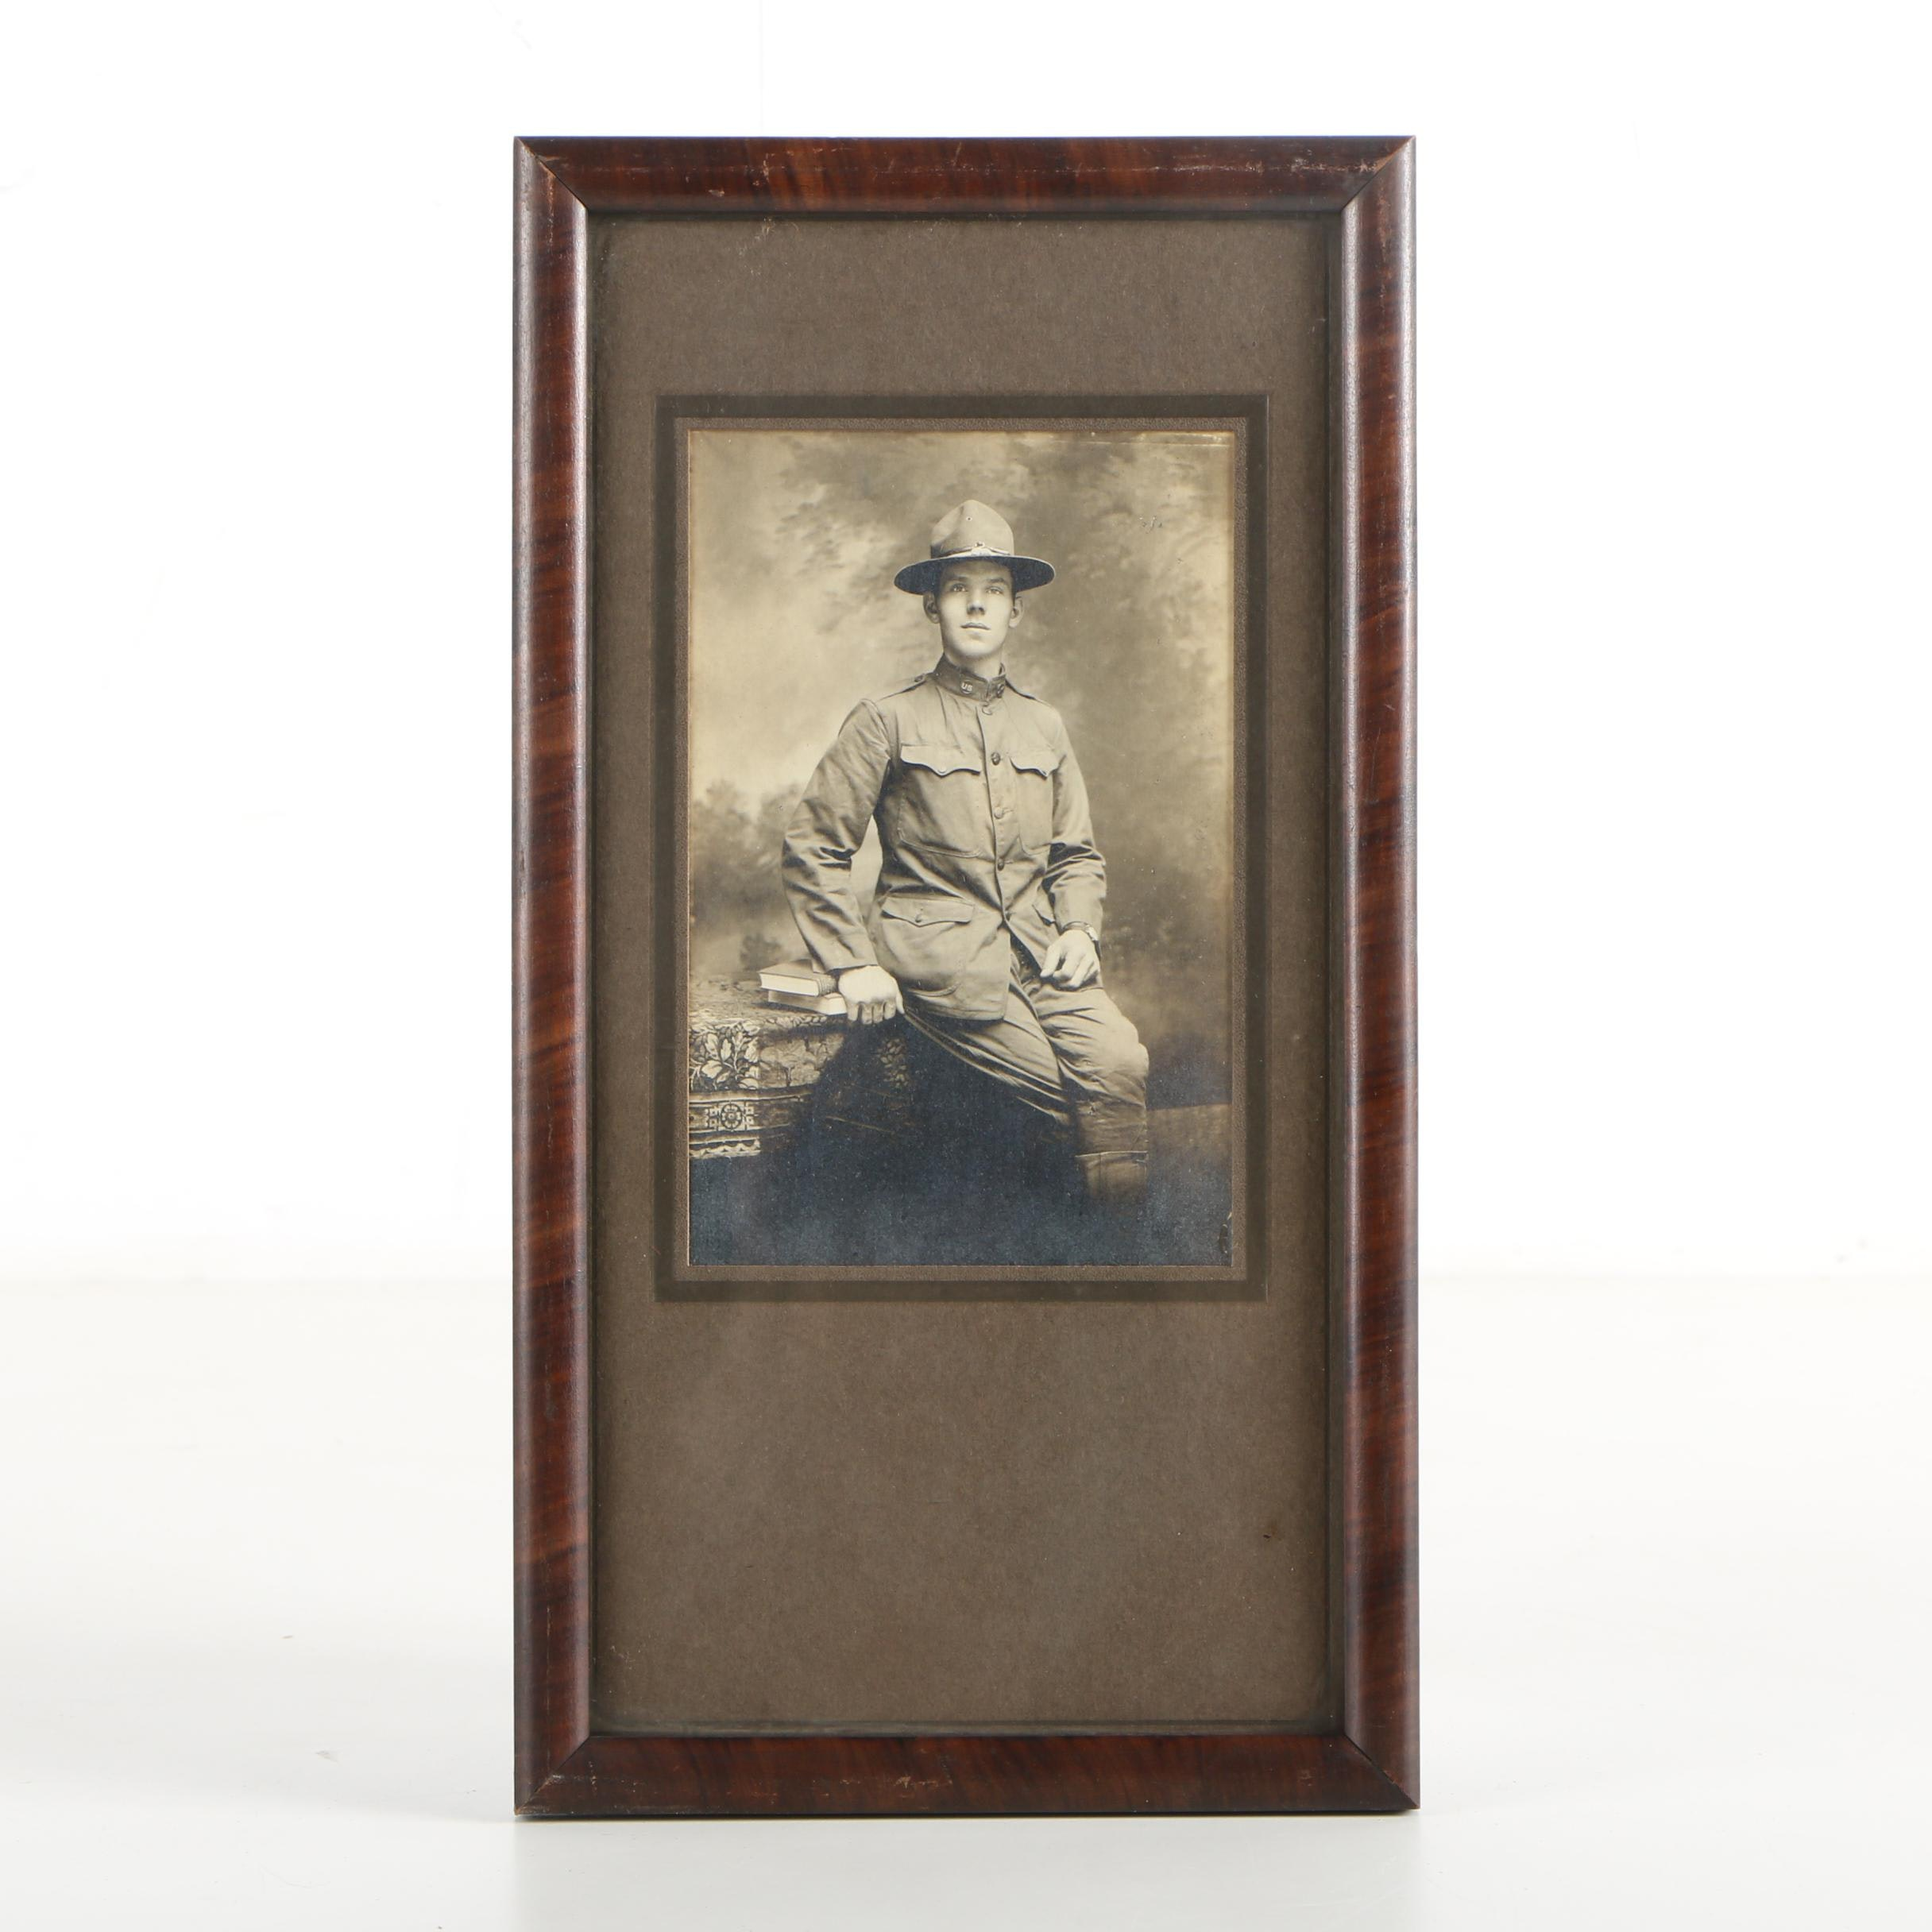 Early 20th Century Gelatin-Silver Portrait of Soldier